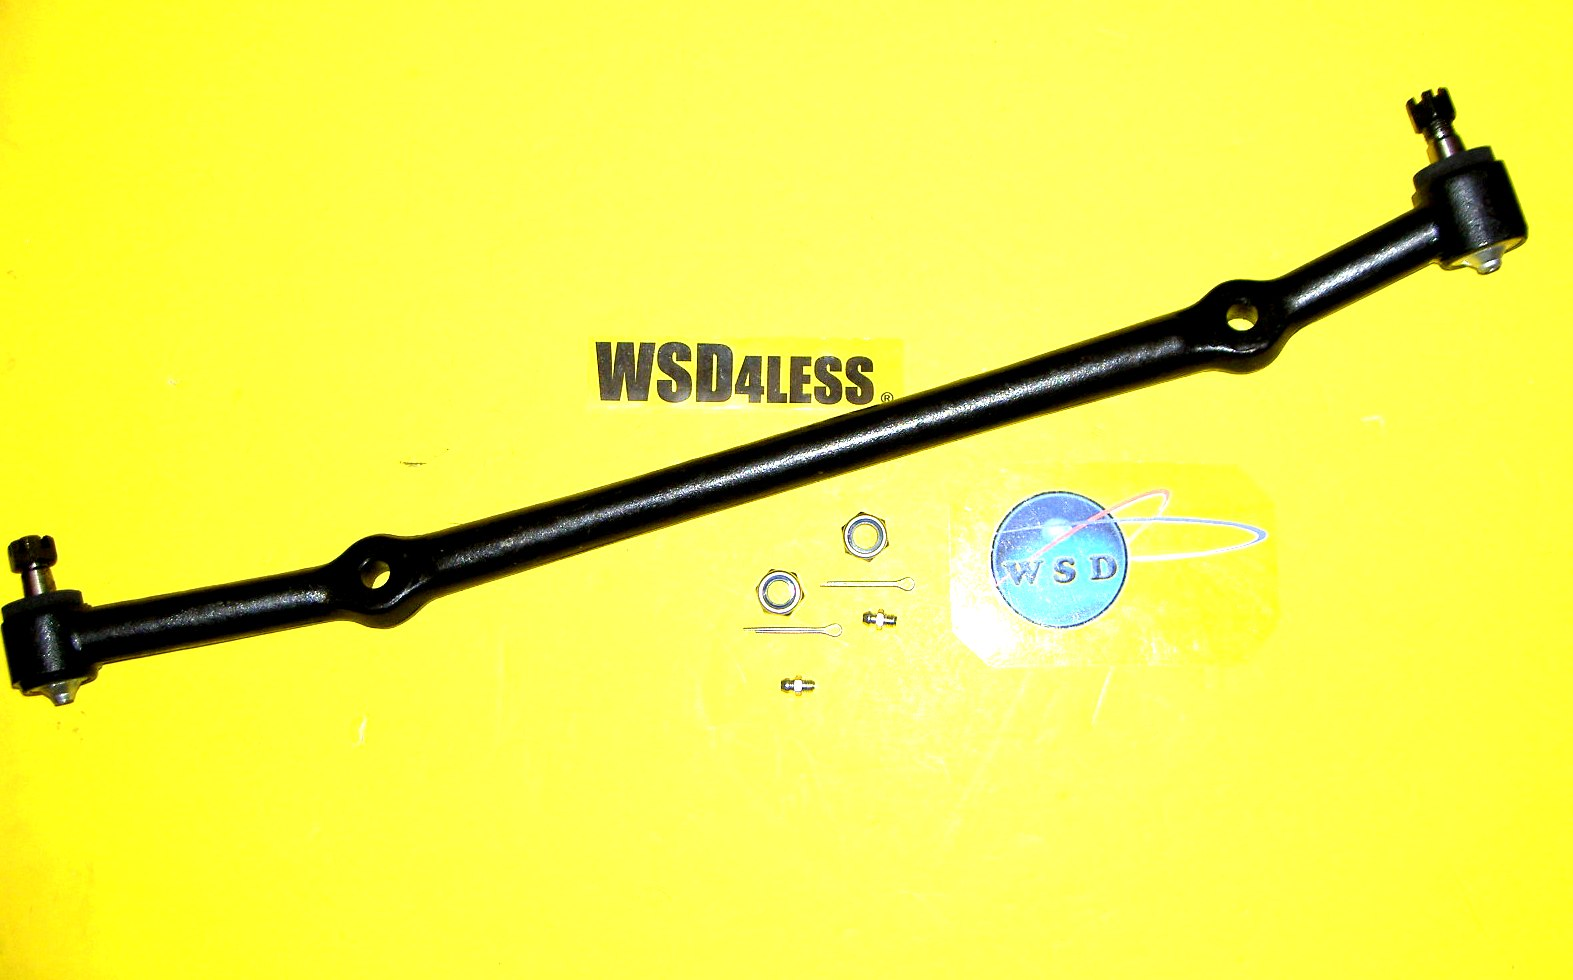 Ds899 center link 1991 1996 buick commercial chassis 1977 1989 buick electra 1980 1983 buick estate